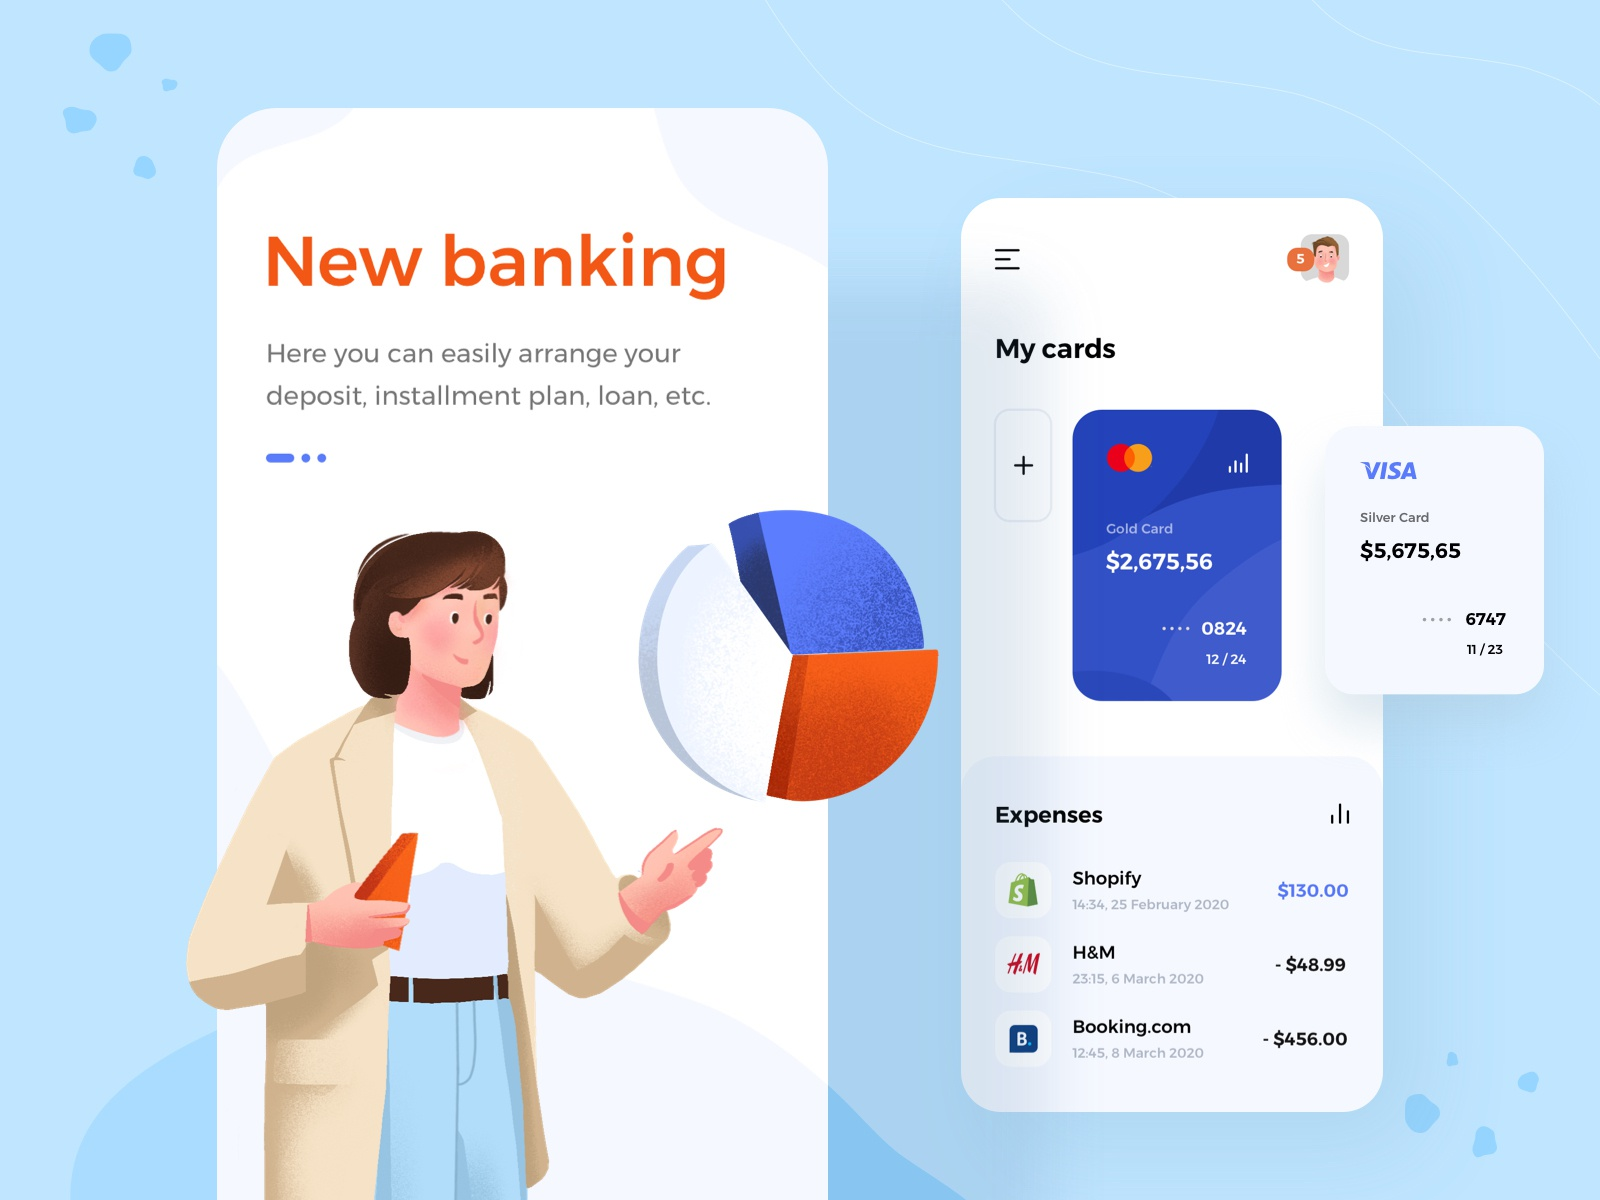 Key Things to Know Before Developing a Mobile-Only Banking Application